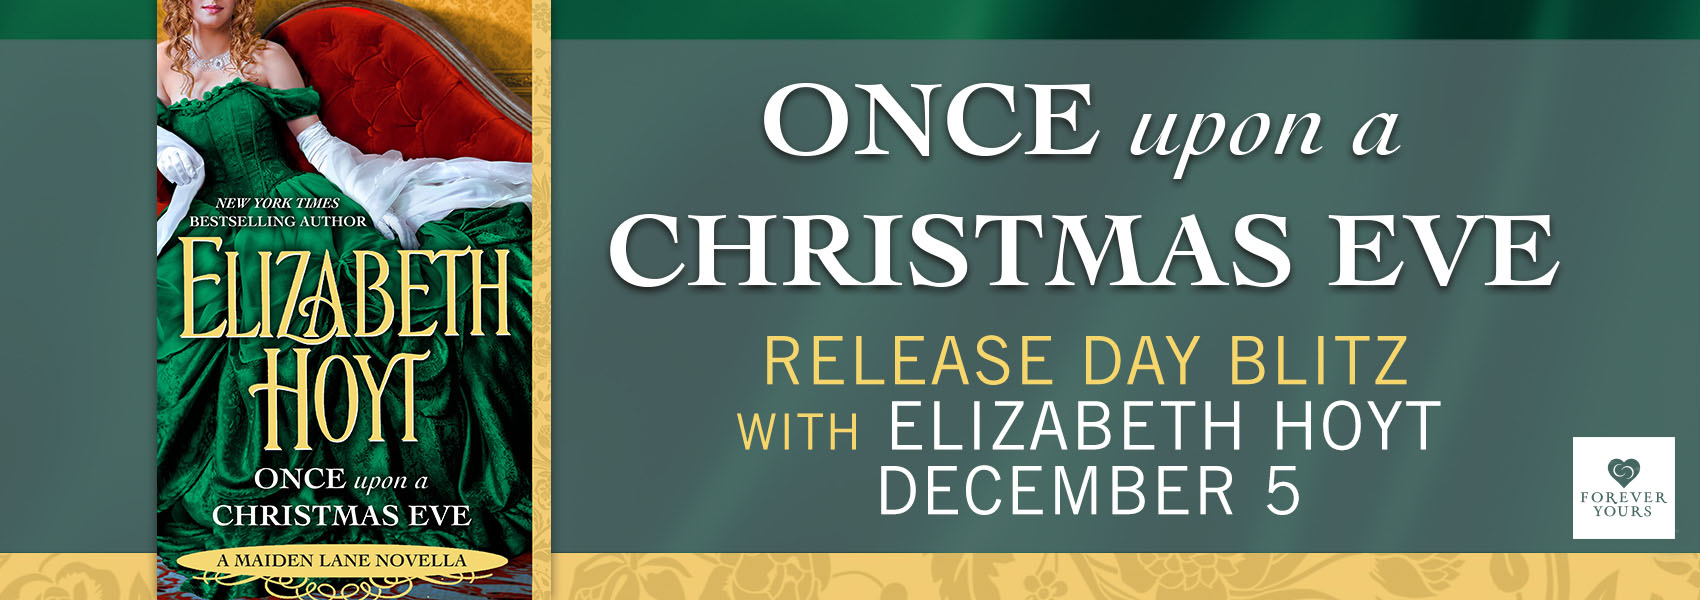 Win ONCE UPON A CHRISTMAS EVE by Elizabeth Hoyt!